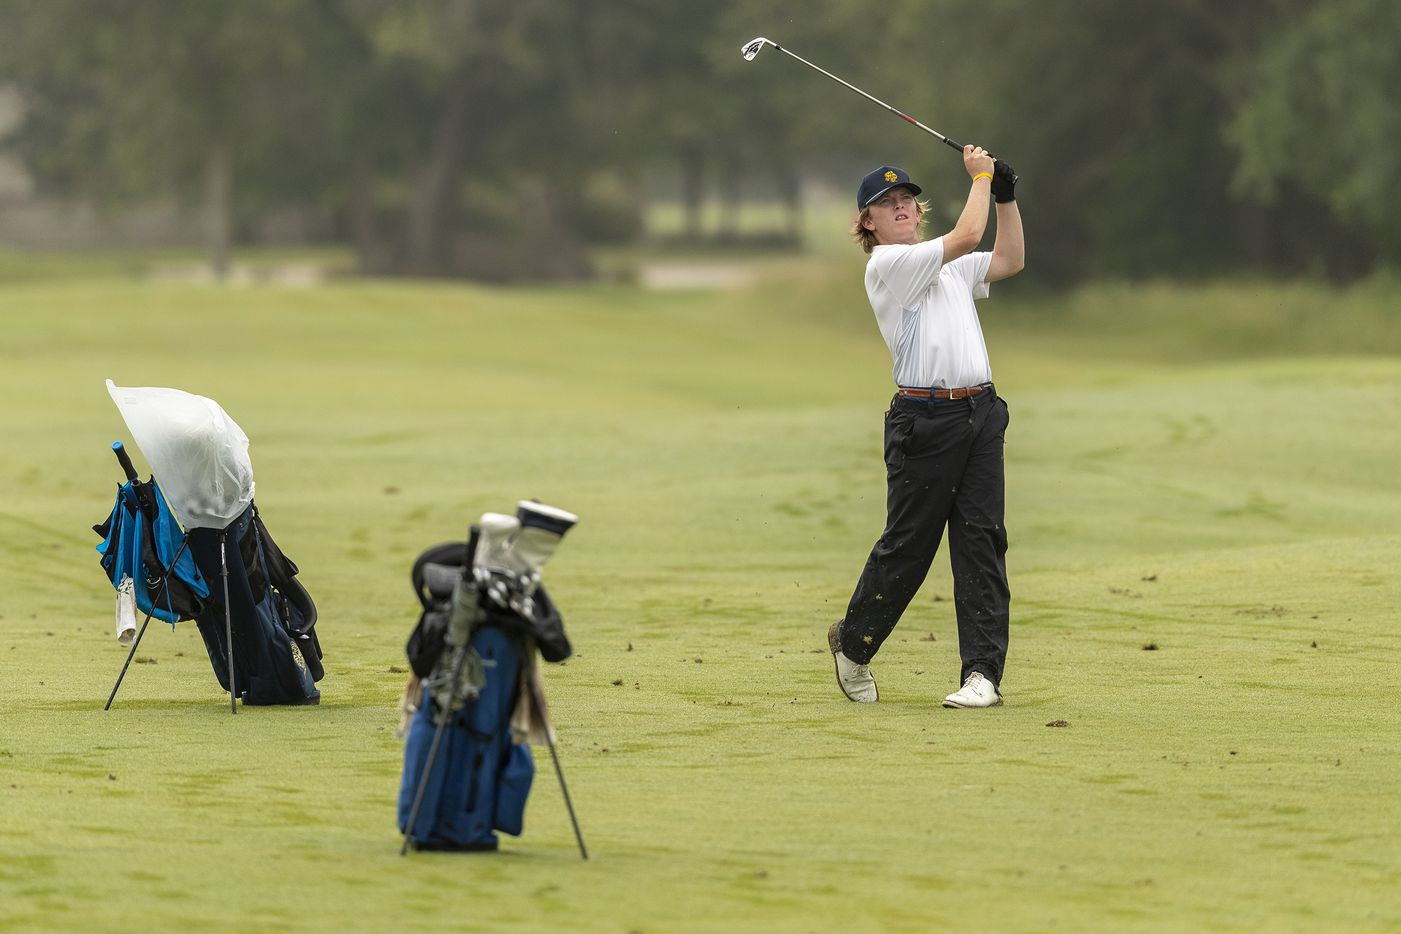 Highland ParkÕs Thompson Huthnance hits from the 12th fairway during round 1 of the UIL Class 5A boys golf tournament in Georgetown, Monday, May 17, 2021. (Stephen Spillman/Special Contributor)